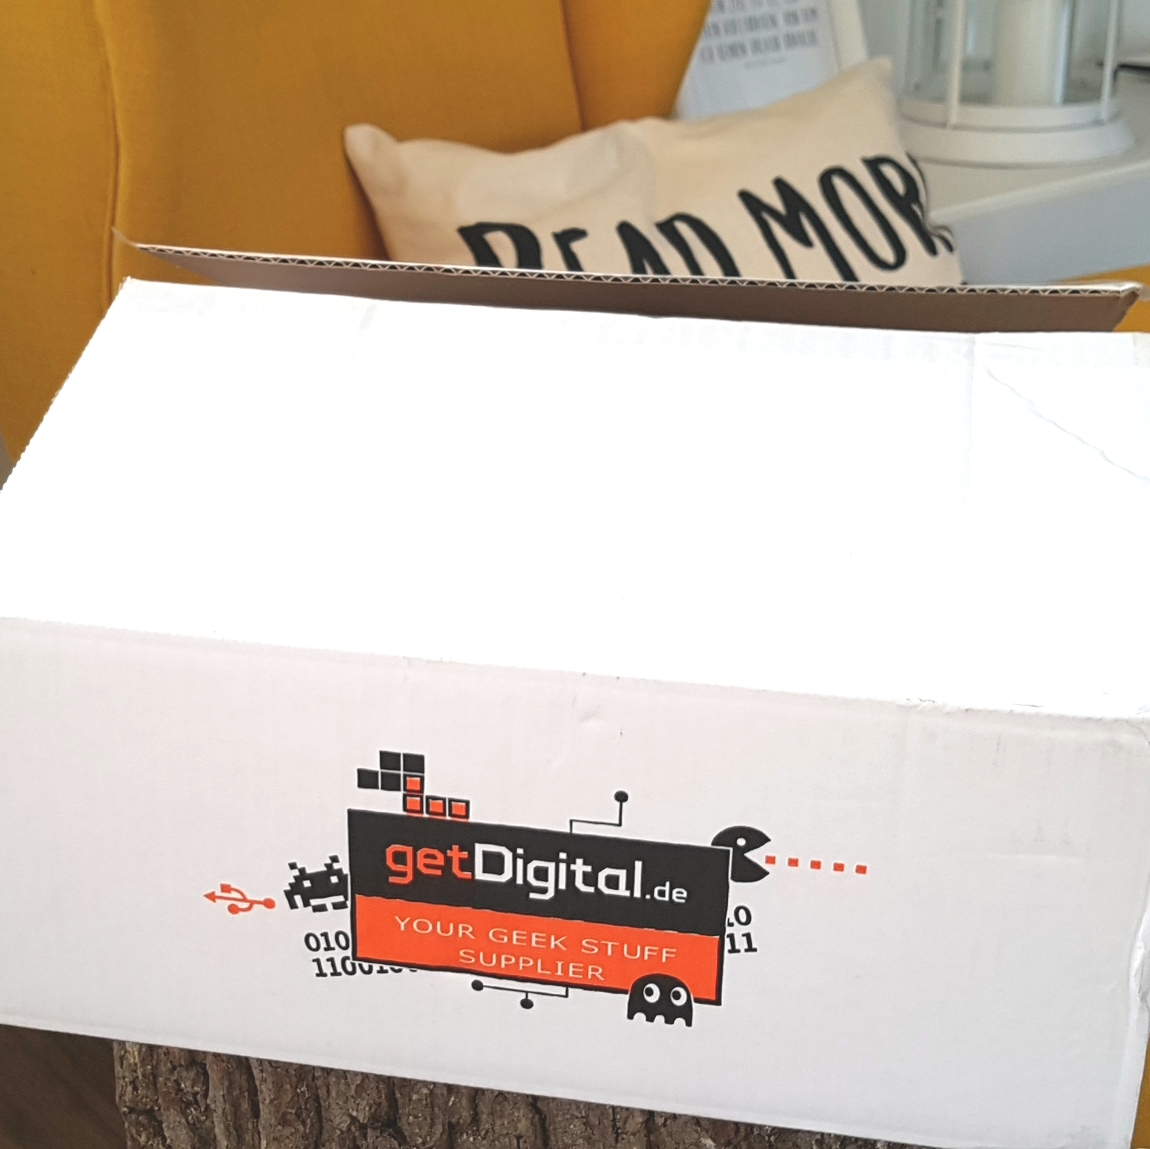 getDigital.de Lootbox August 2018 (unboxing)